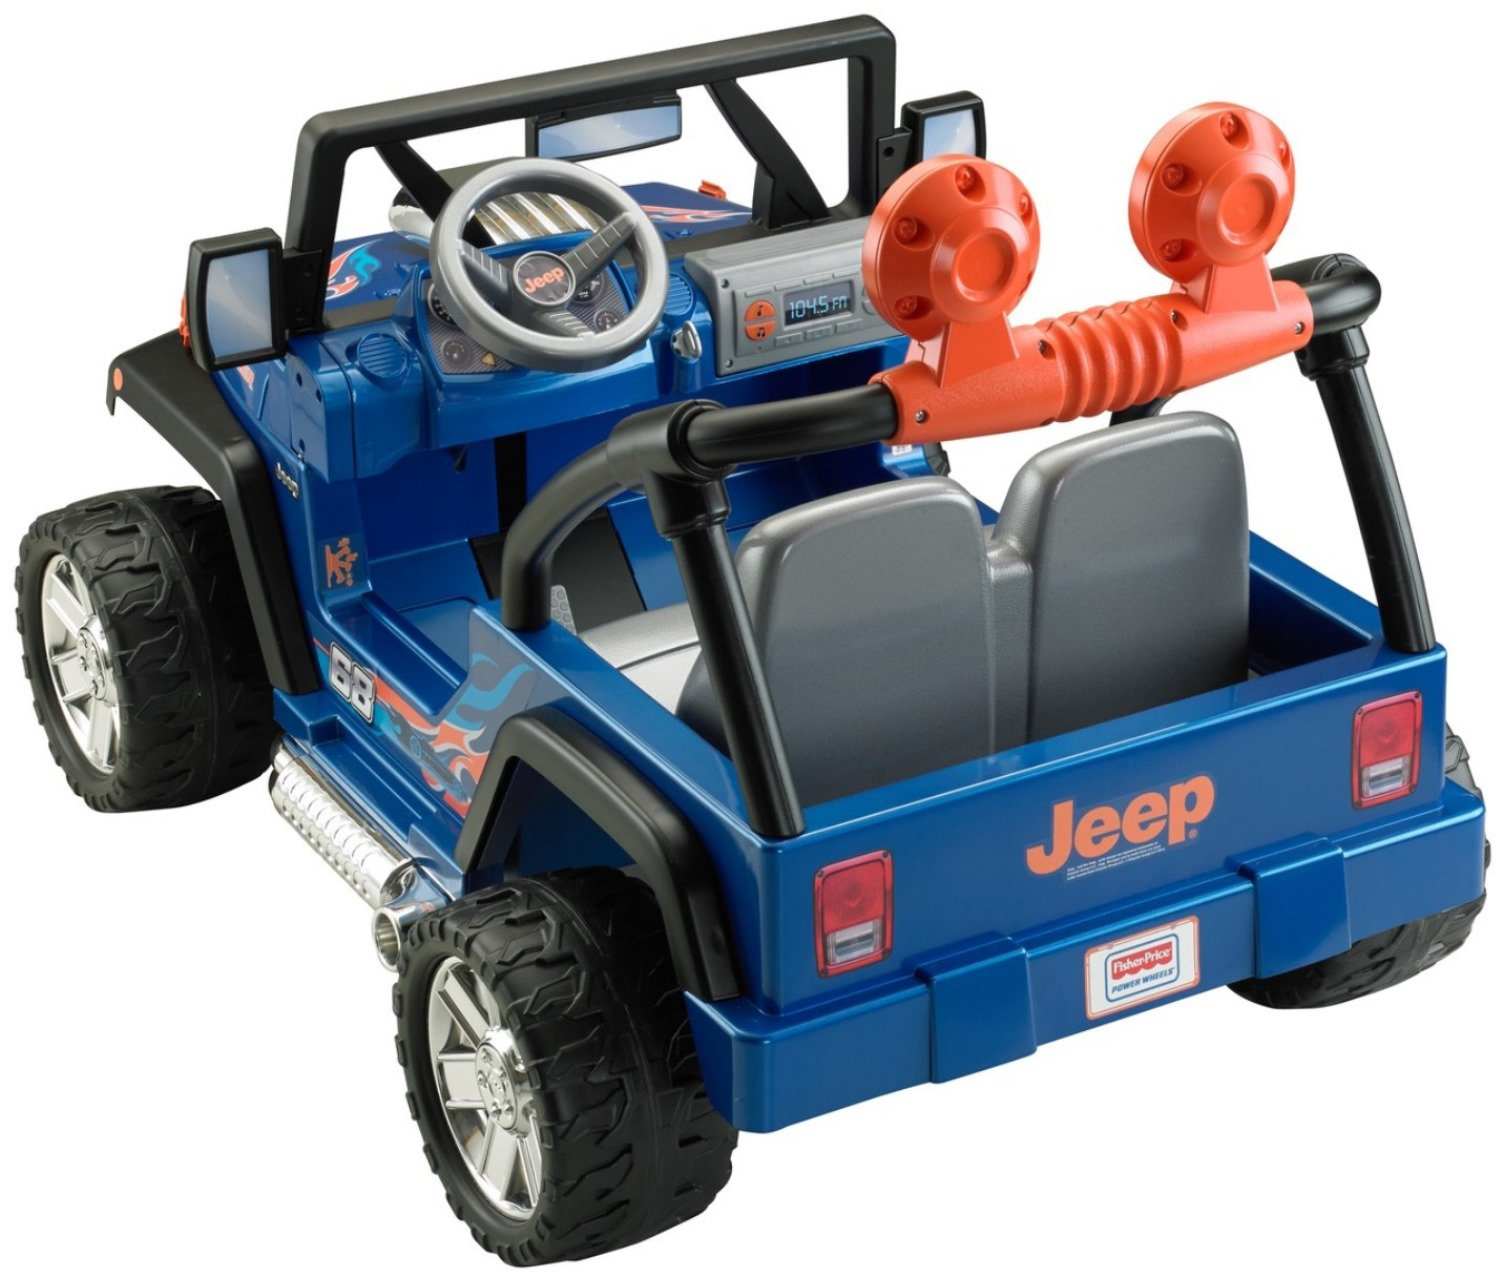 Power Wheels Hot Wheels Jeep Wrangler, Blue (12V) by Power Wheels (Image #7)